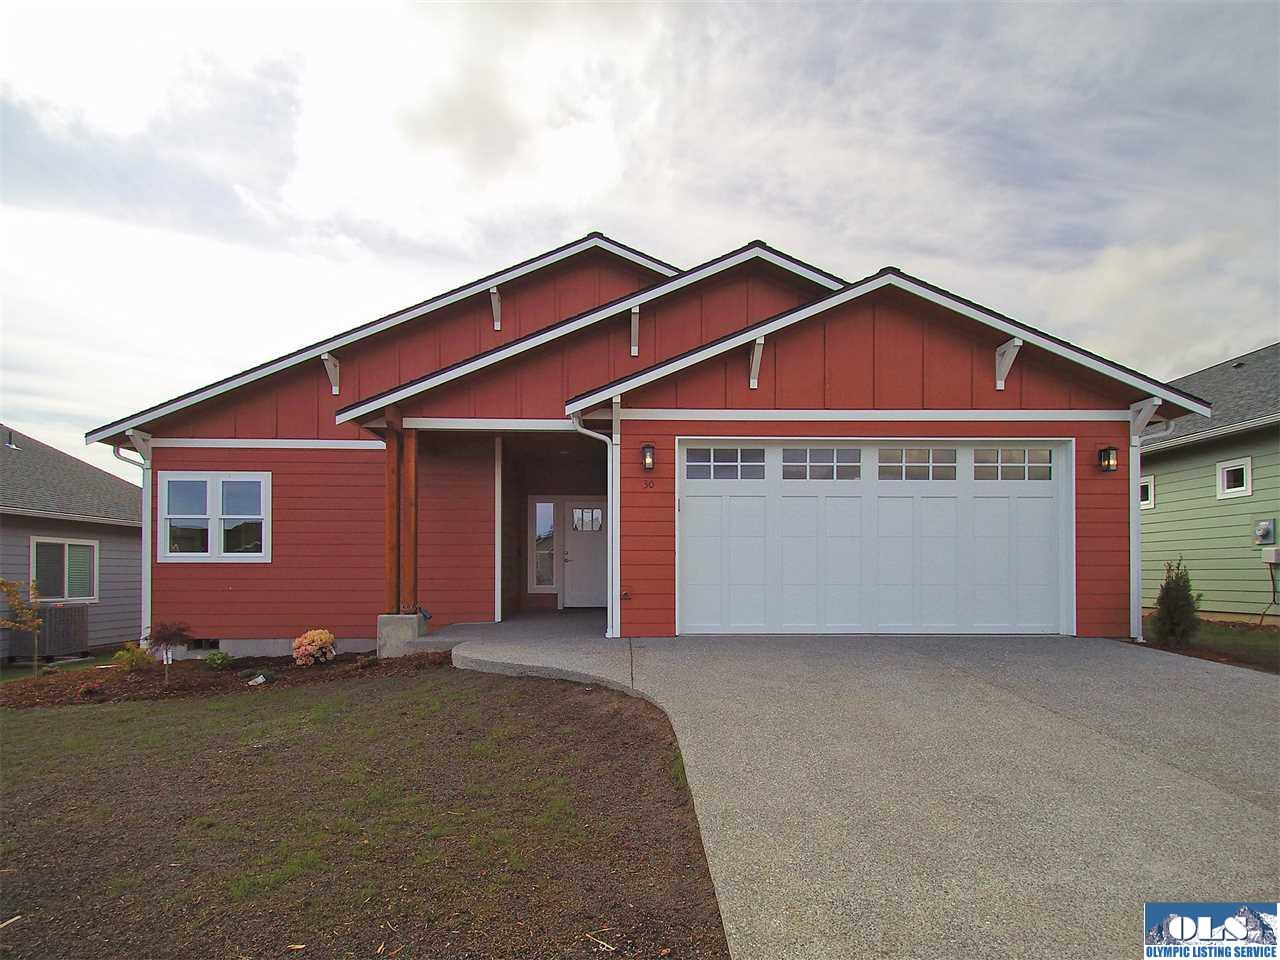 Mls 321843 30 Pear Court Sequim Wa 98382 Contact Chuck At